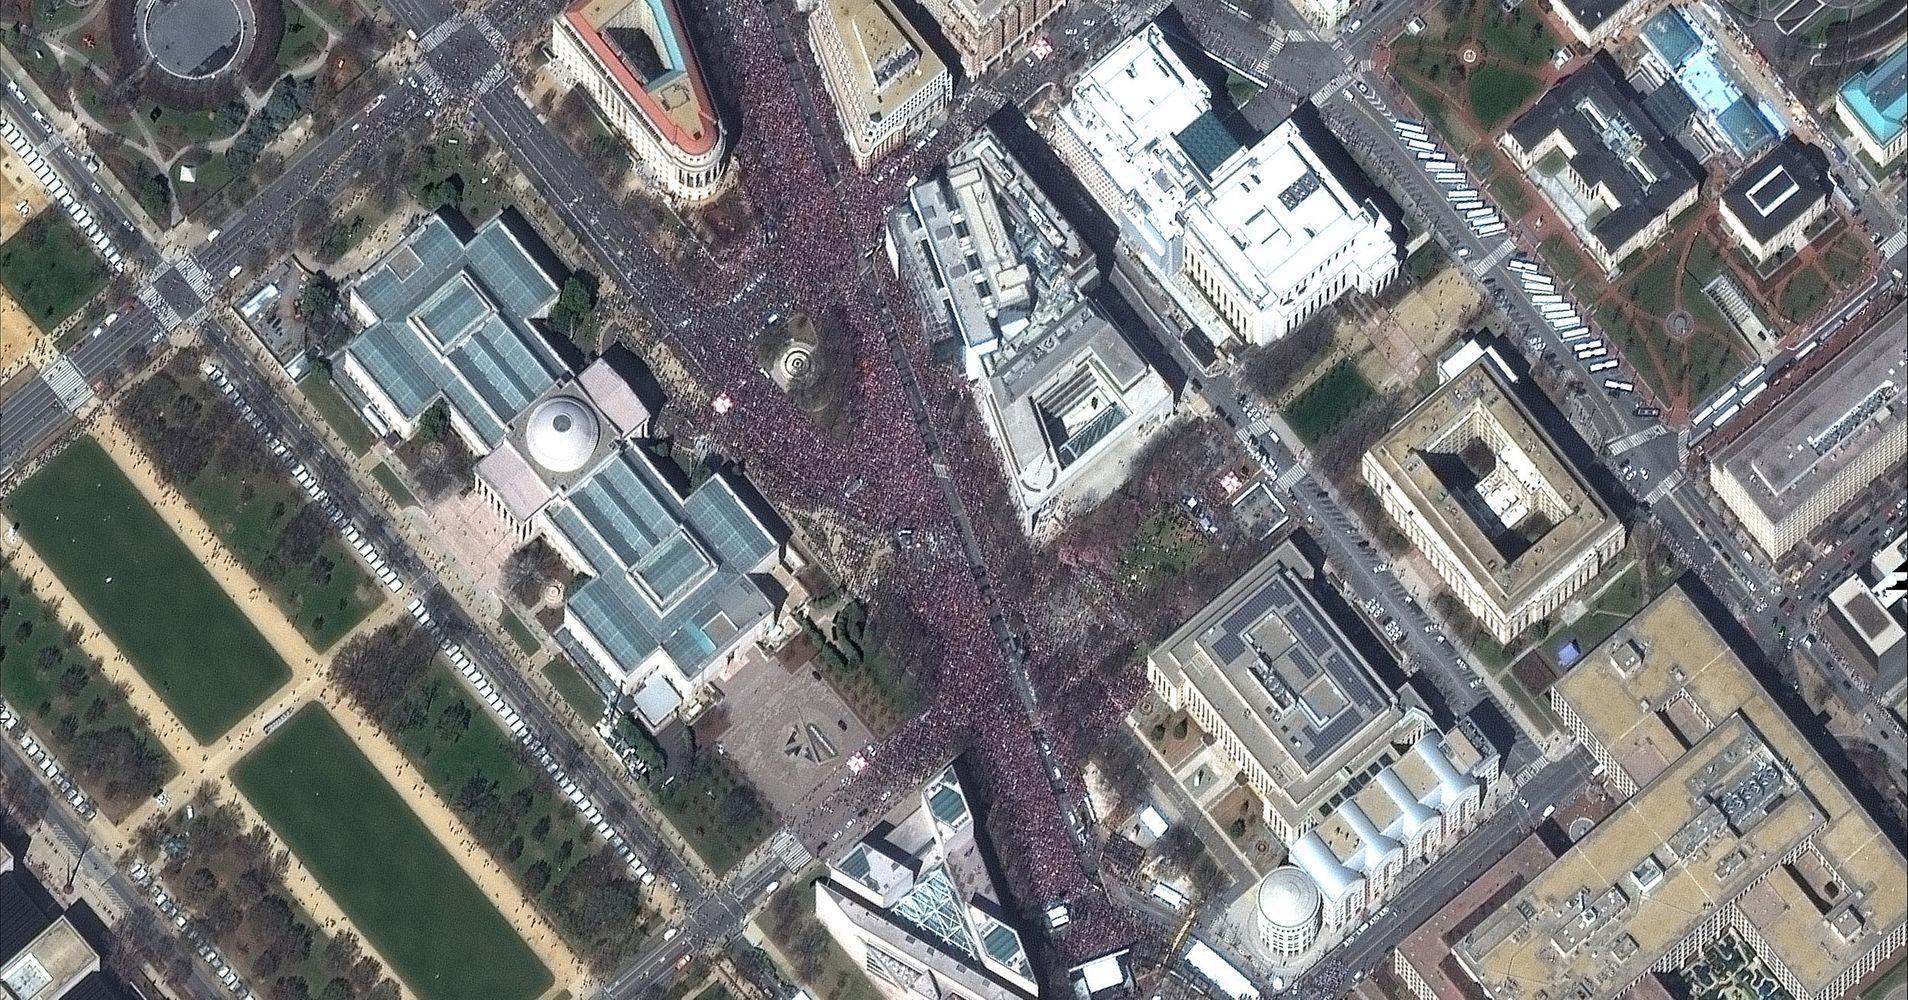 This Is What The March For Our Lives Looked Like From Space